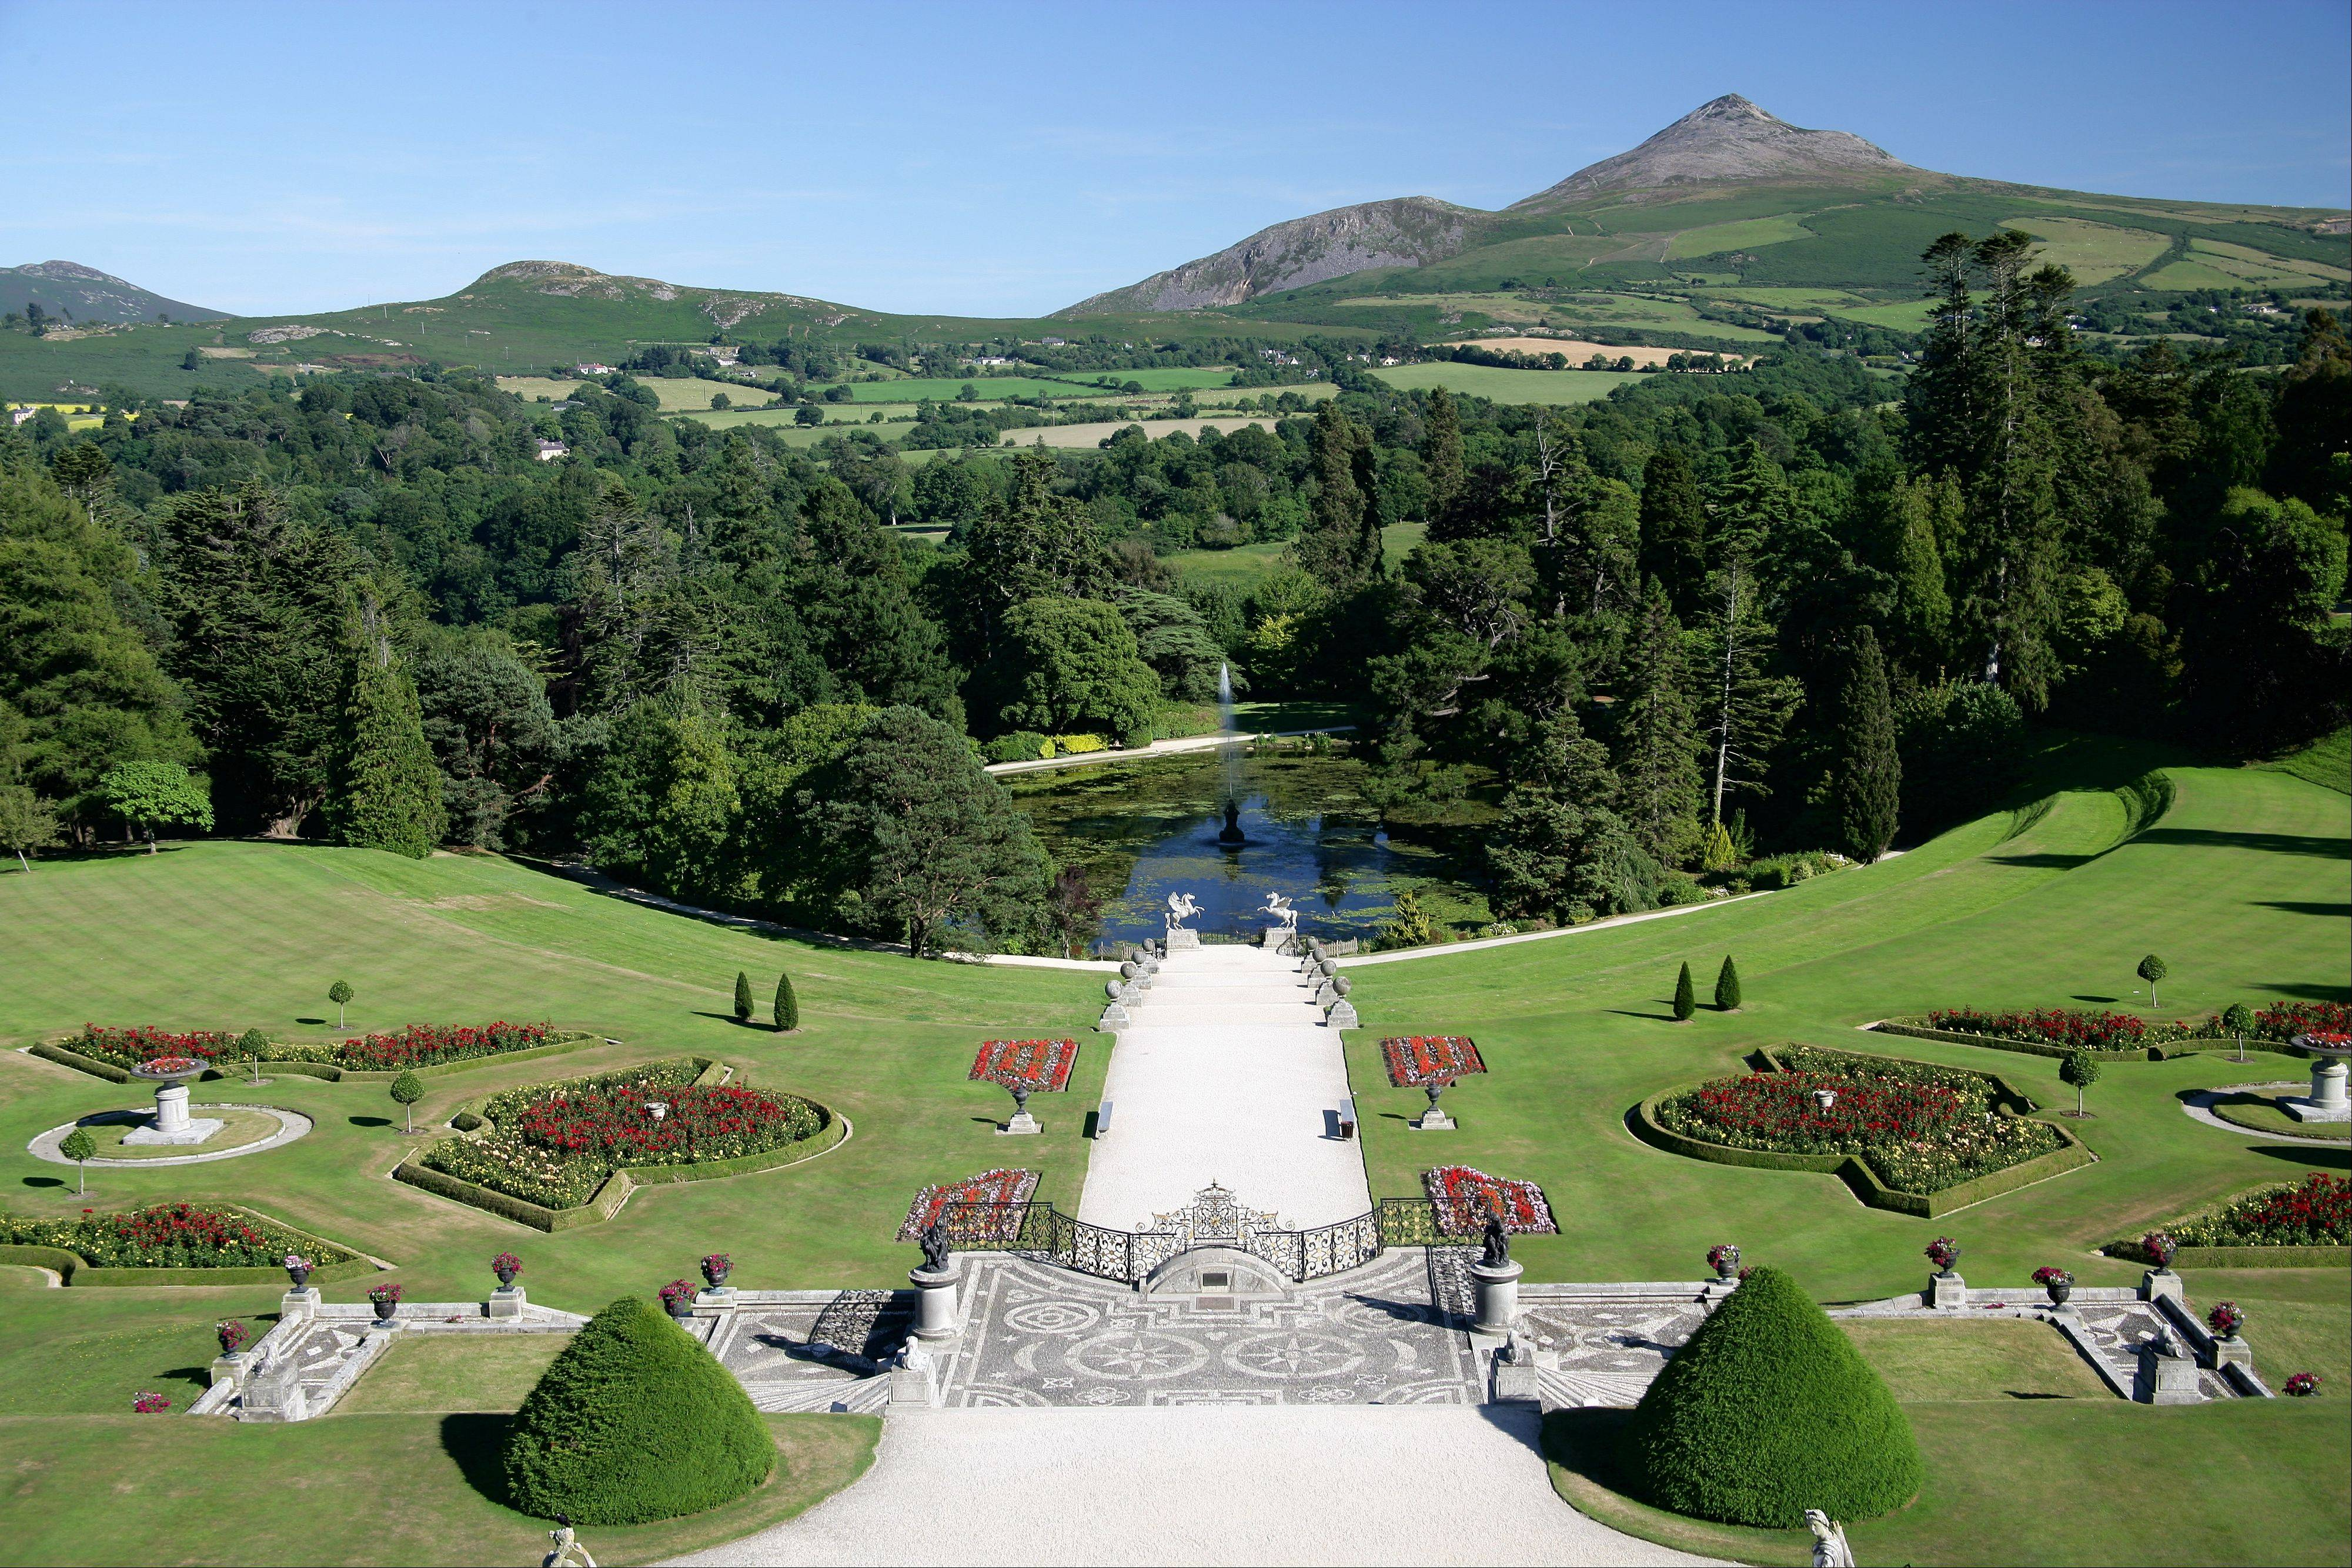 This undated photo from the Powerscourt Estate shows the gardens and grounds of the estate in Enniskerry, County Wicklow, Ireland, with the Wicklow Mountains in the background. The Powerscourt Estate and other great houses, castles and gardens in Ireland are hosting events connected to The Gathering, a yearlong nationwide event inviting Irish emigrants and their descendants home to celebrate their heritage. Powerscourt recently hosted a talk by a genealogist to help visitors track their ìWicklow roots.î